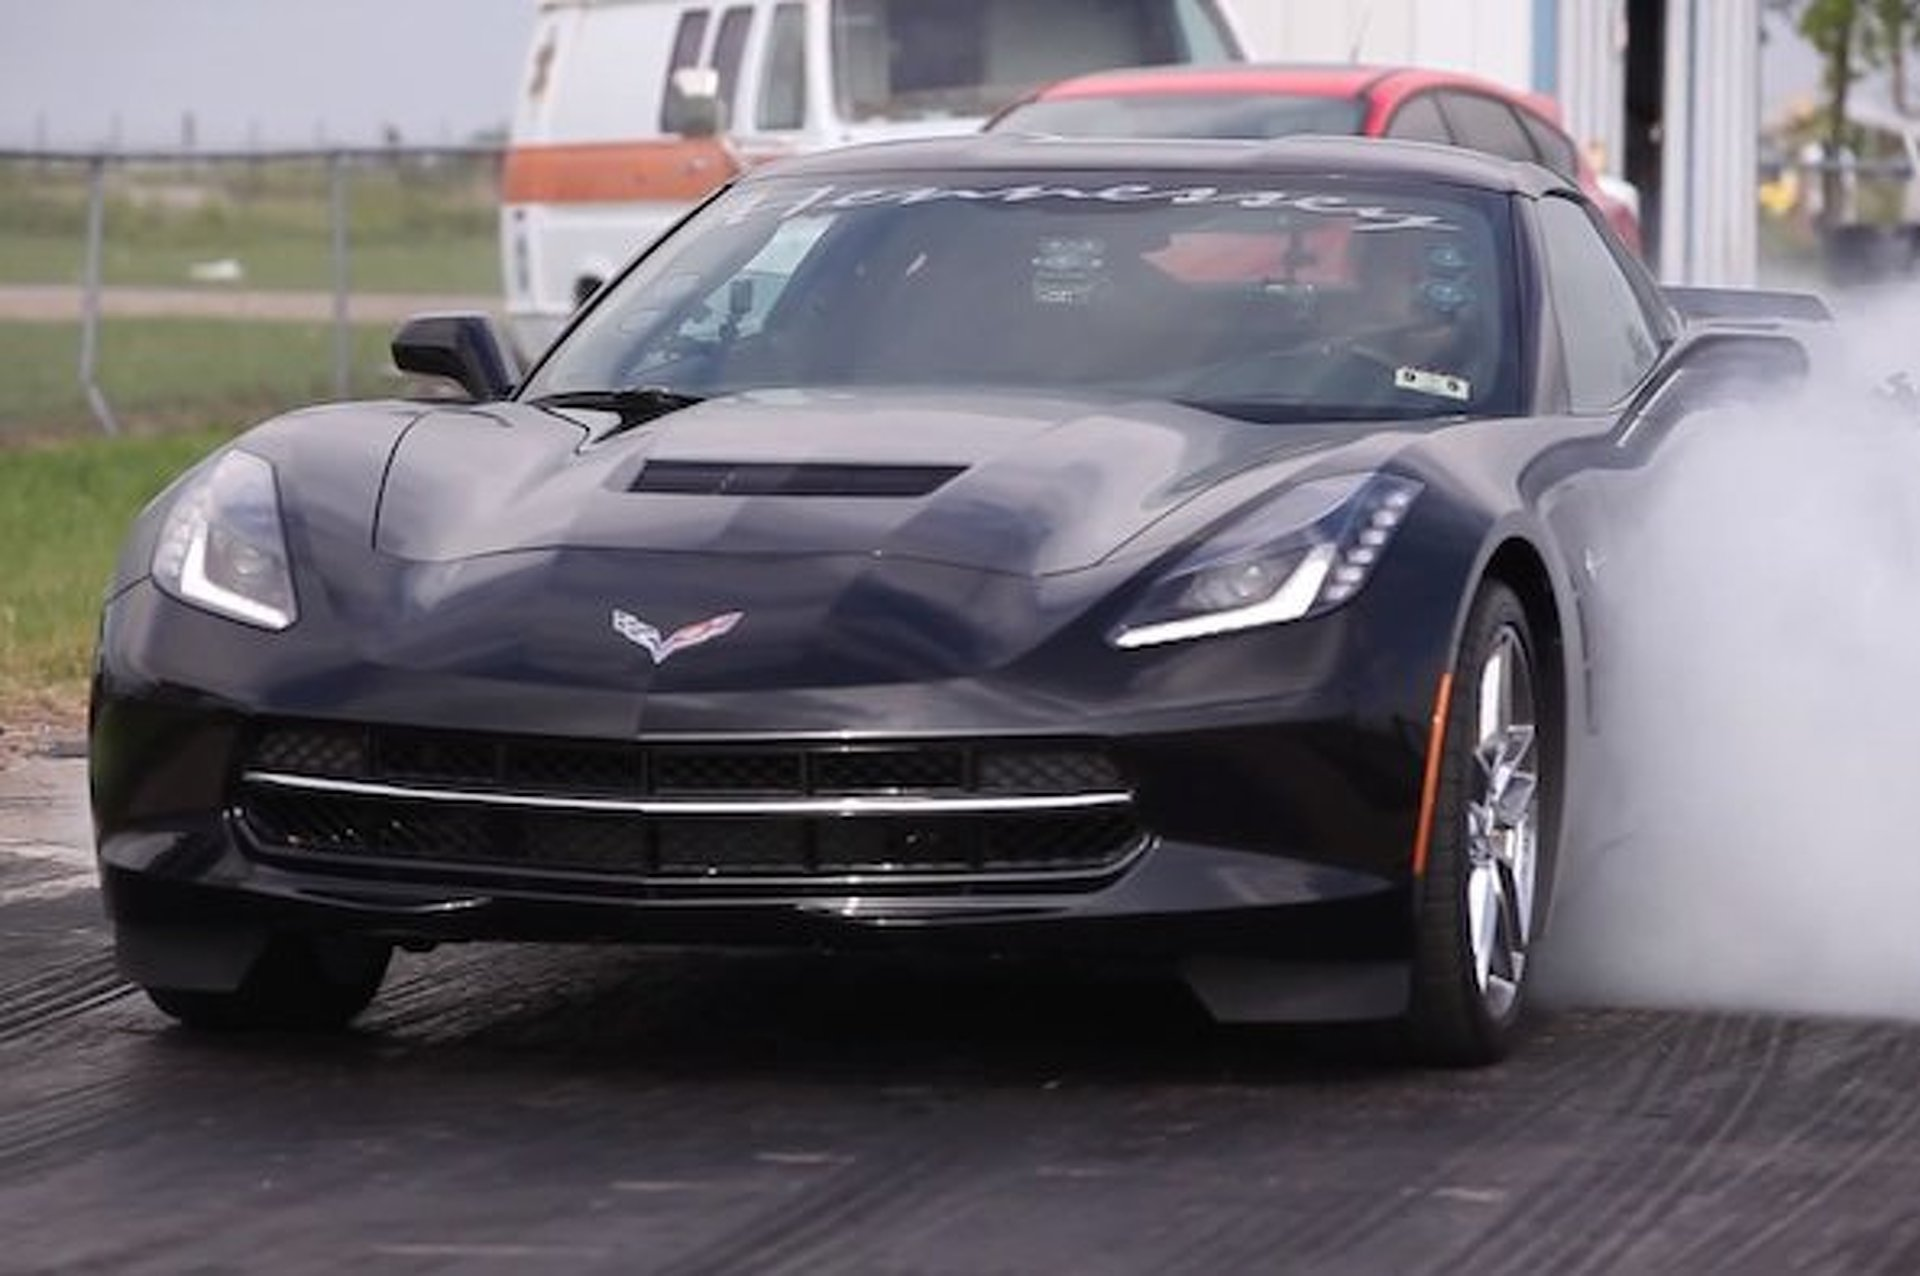 Stock Corvette Runs 1/4 Mile: 12.23 Seconds @ 114.88 MPH [video]